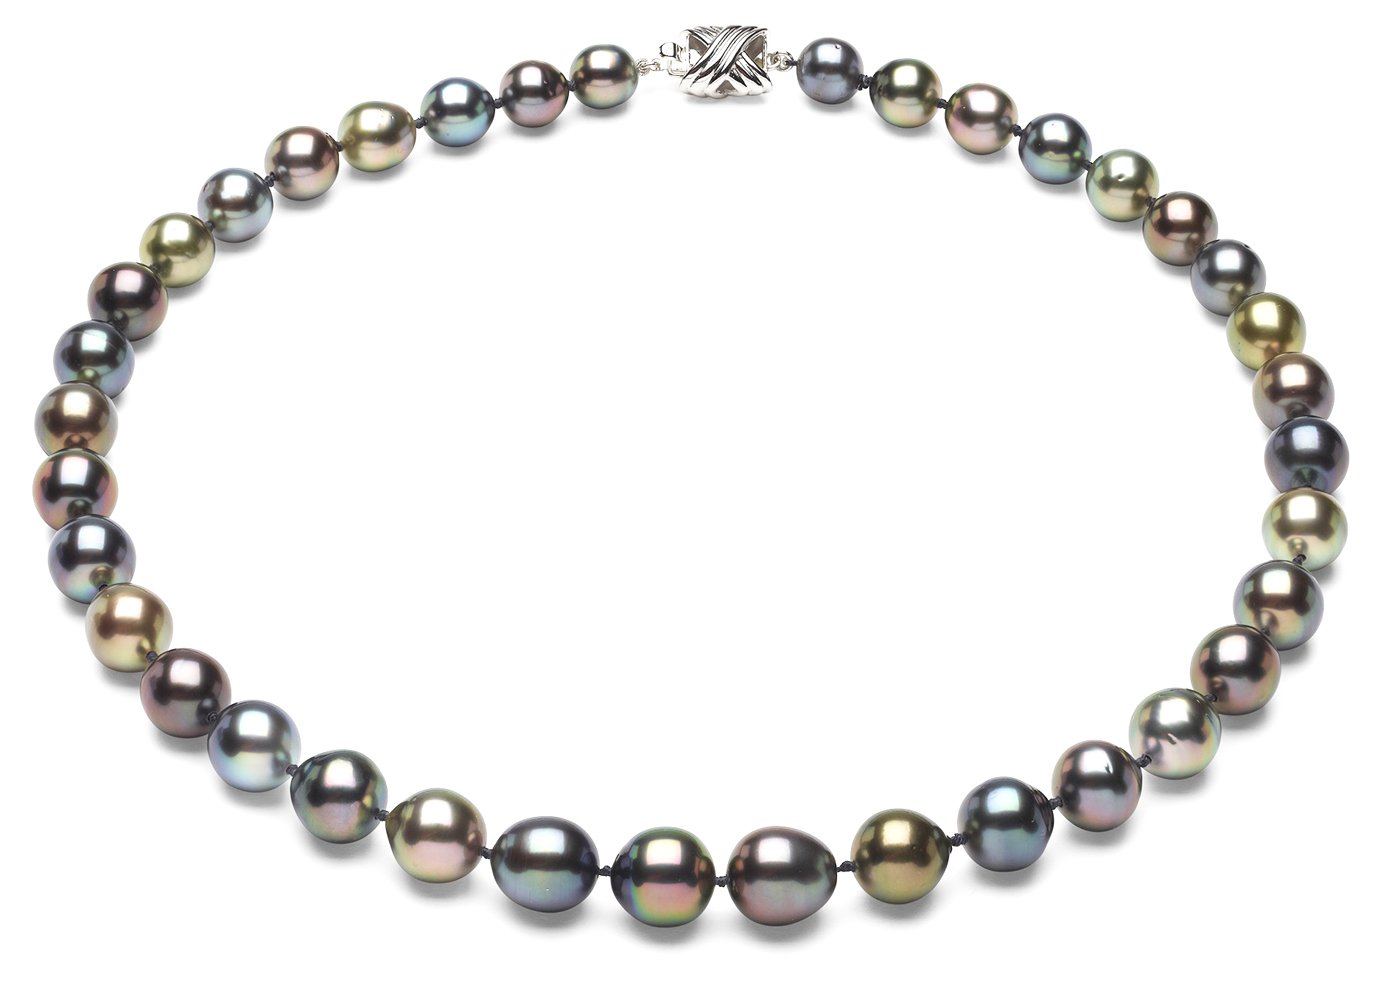 Tahitian Pearl Necklace Serial Number   8mm10mm-pearl-necklace-true-aaa-16inch-s6-sbshbc-tahitian-multi-color-b39